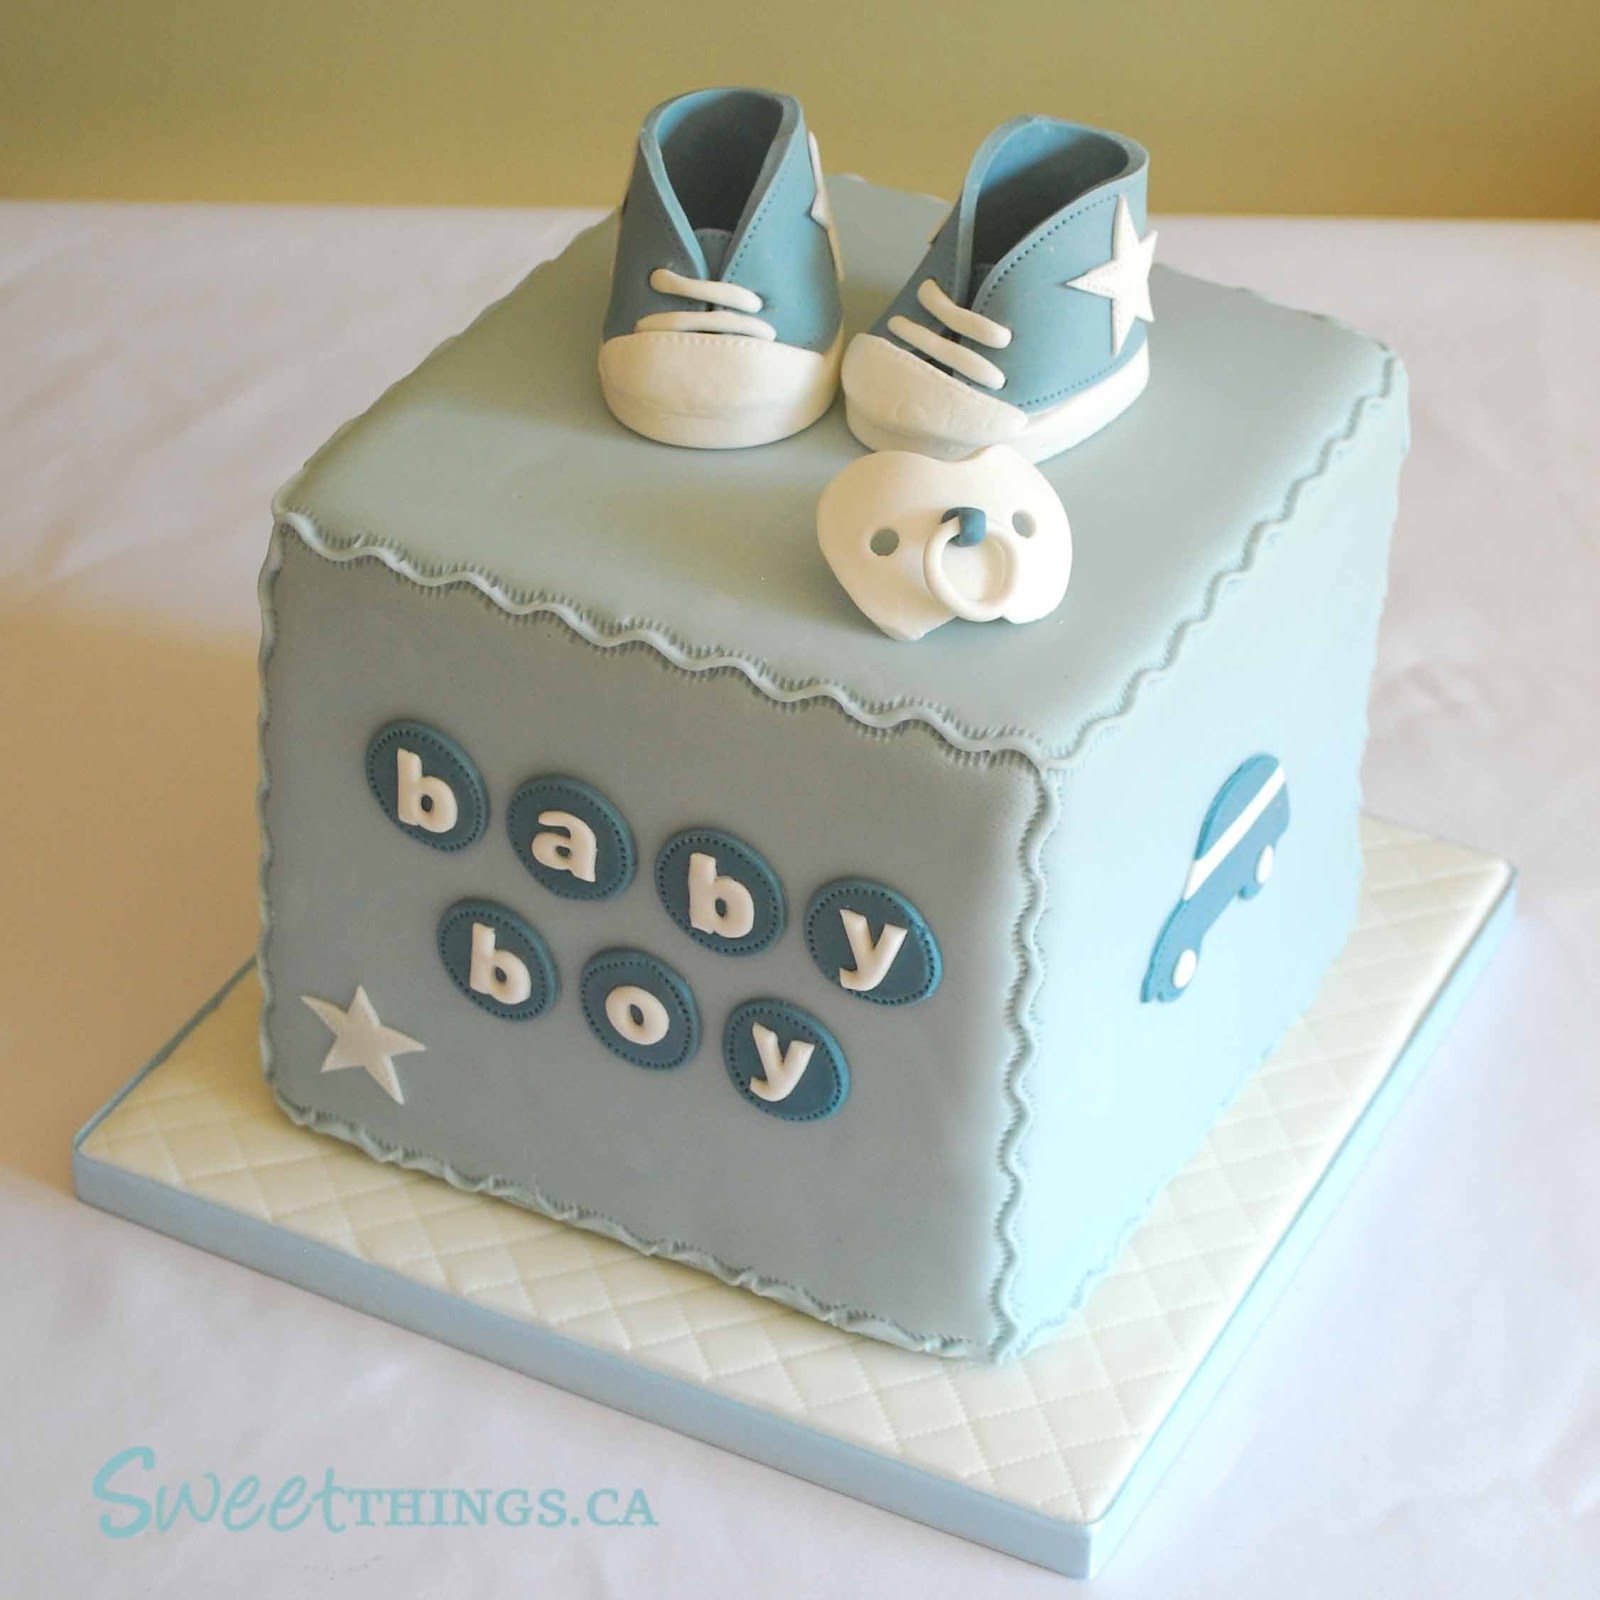 Sweetthings baby boy cake for Baby boy cake decoration